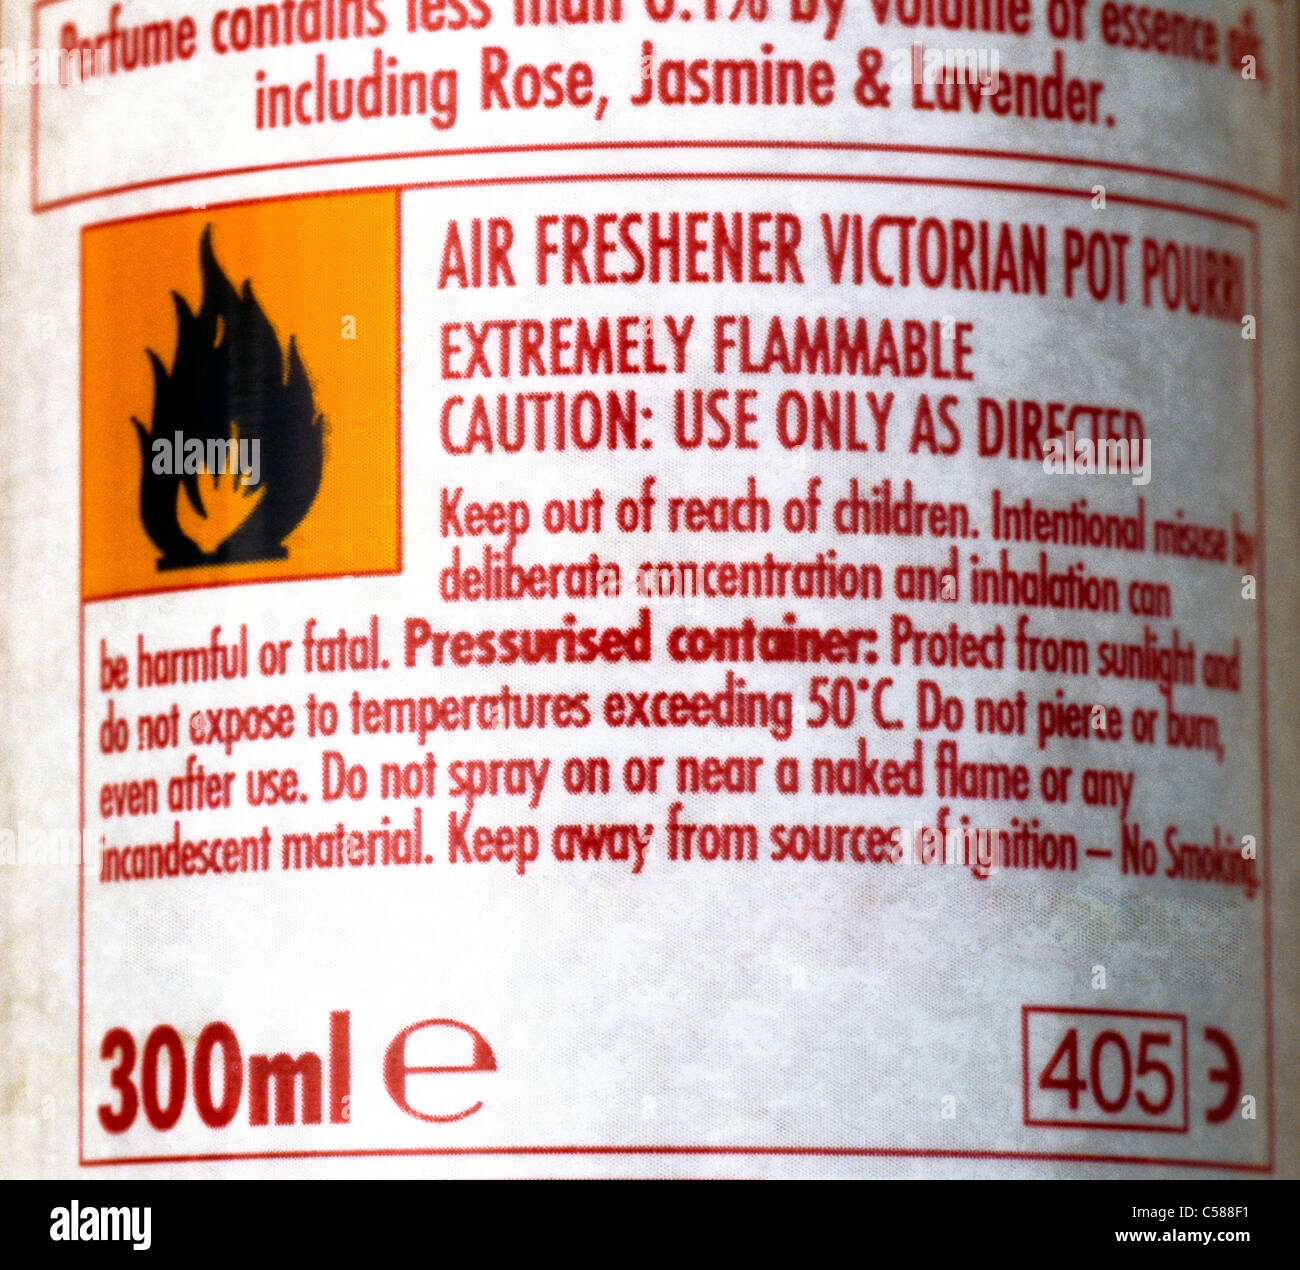 Warning label on air freshener and flammable symbol stock photo warning label on air freshener and flammable symbol buycottarizona